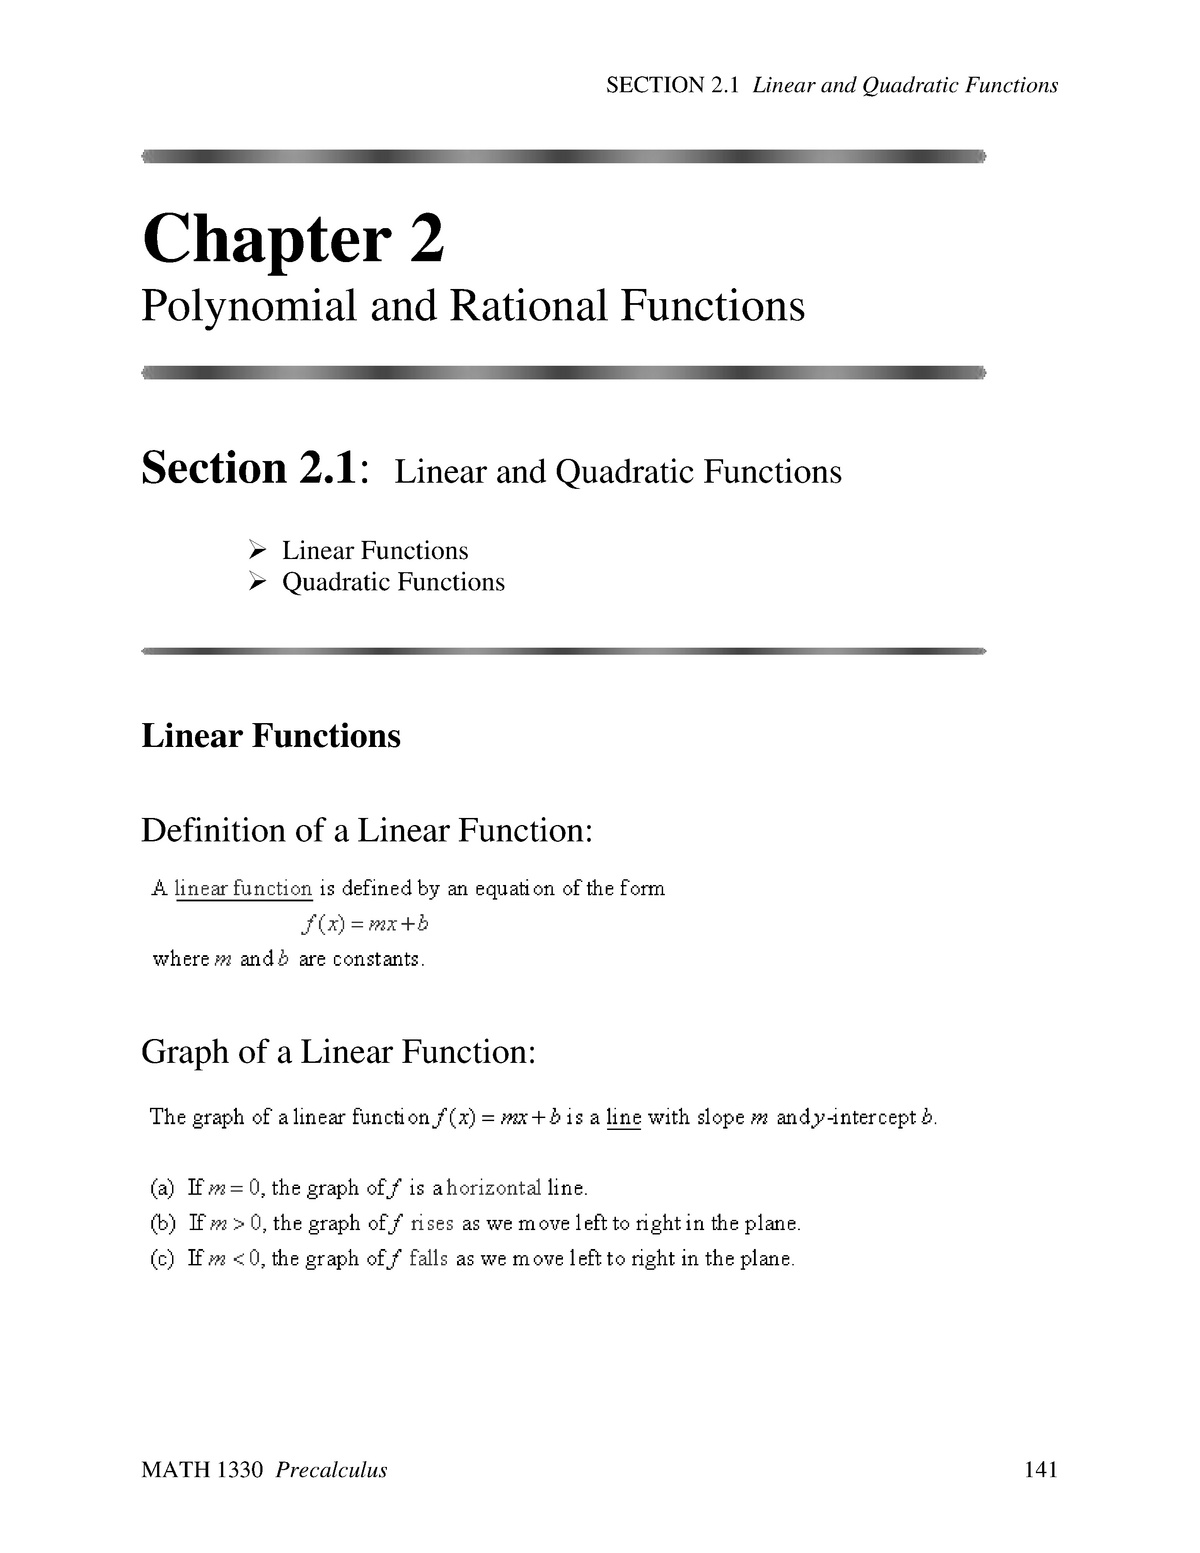 Linear and Quadratic Functions section 2 1 - MATH 1330: Precalculus